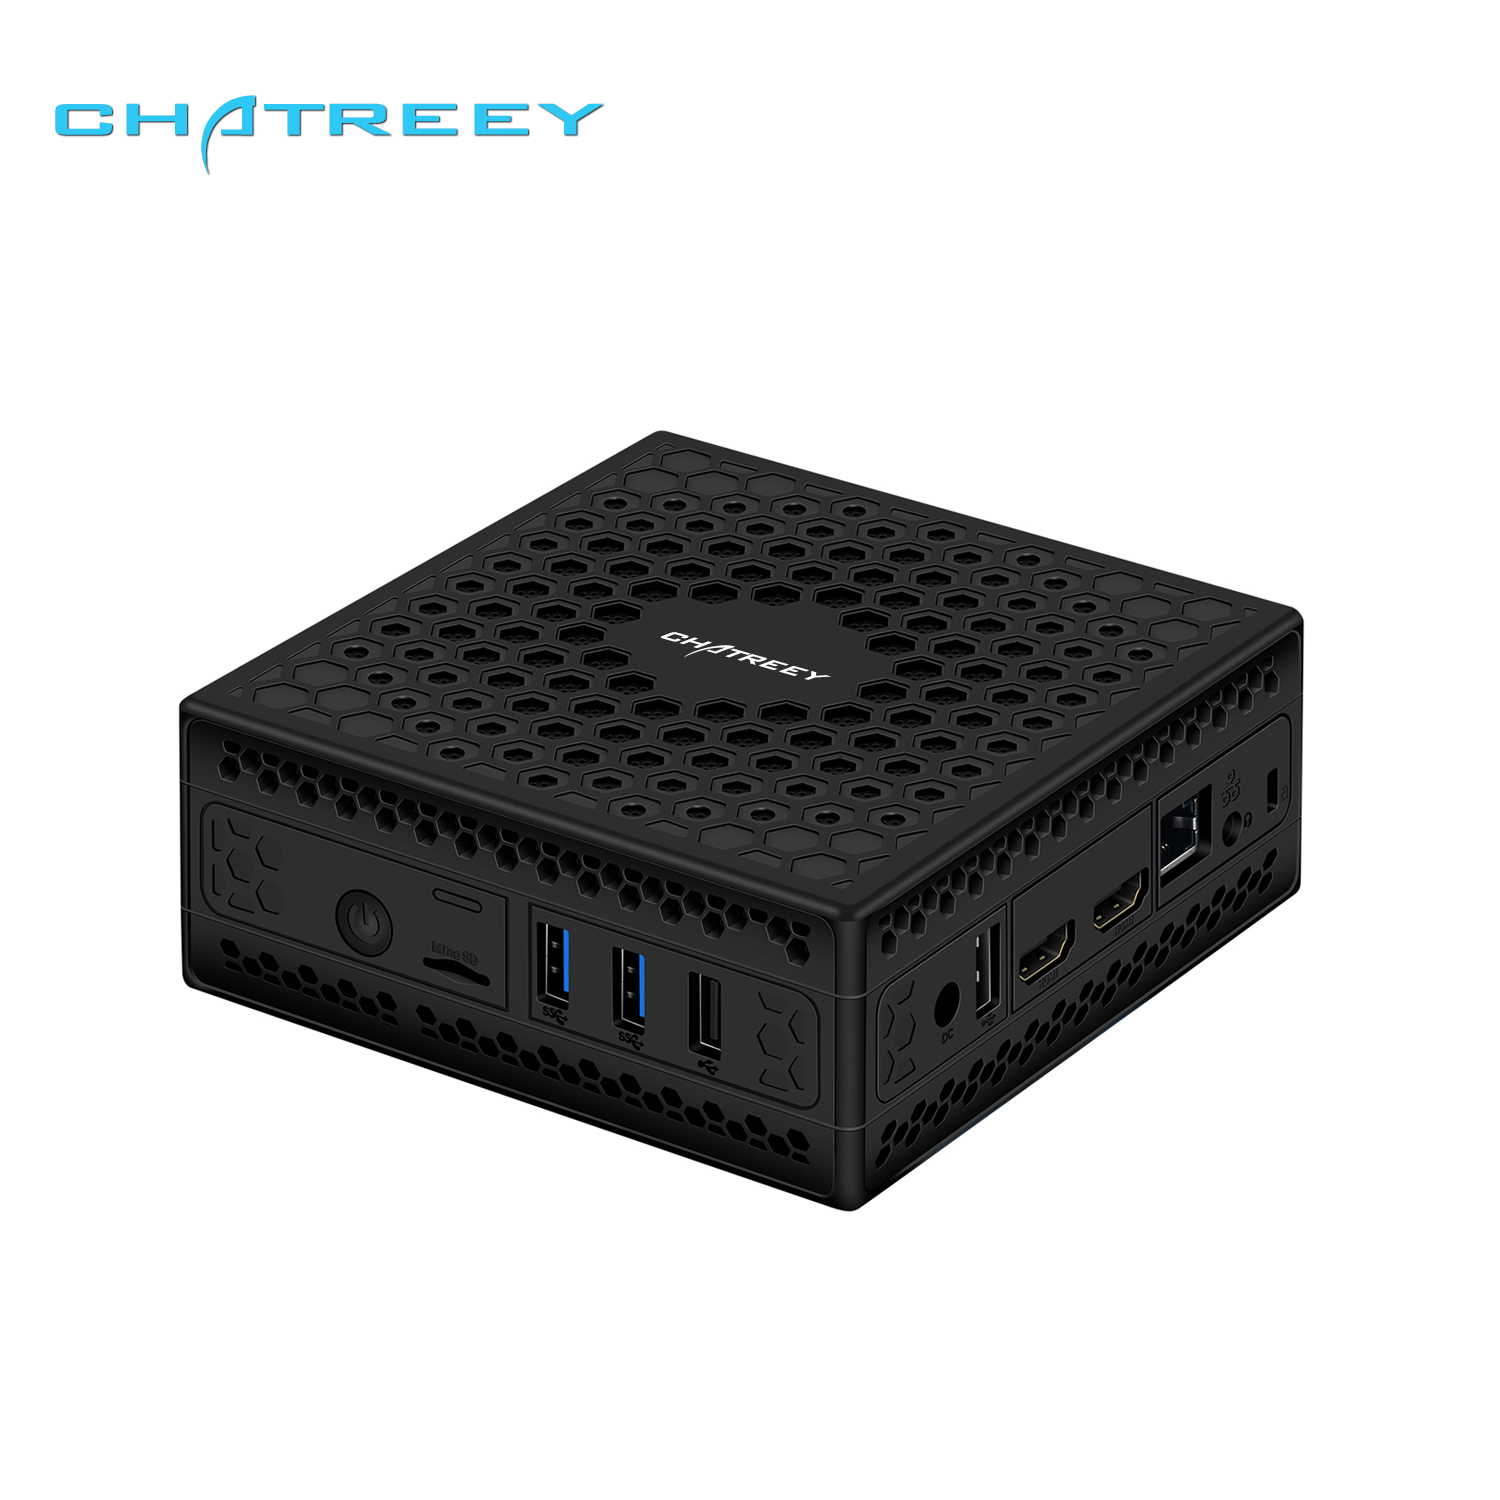 Chatrey AC1-Z fanless mini pc embutido intel celeron j3455 j4105 quad core duplo display hdmi windows 10 linux htpc computador